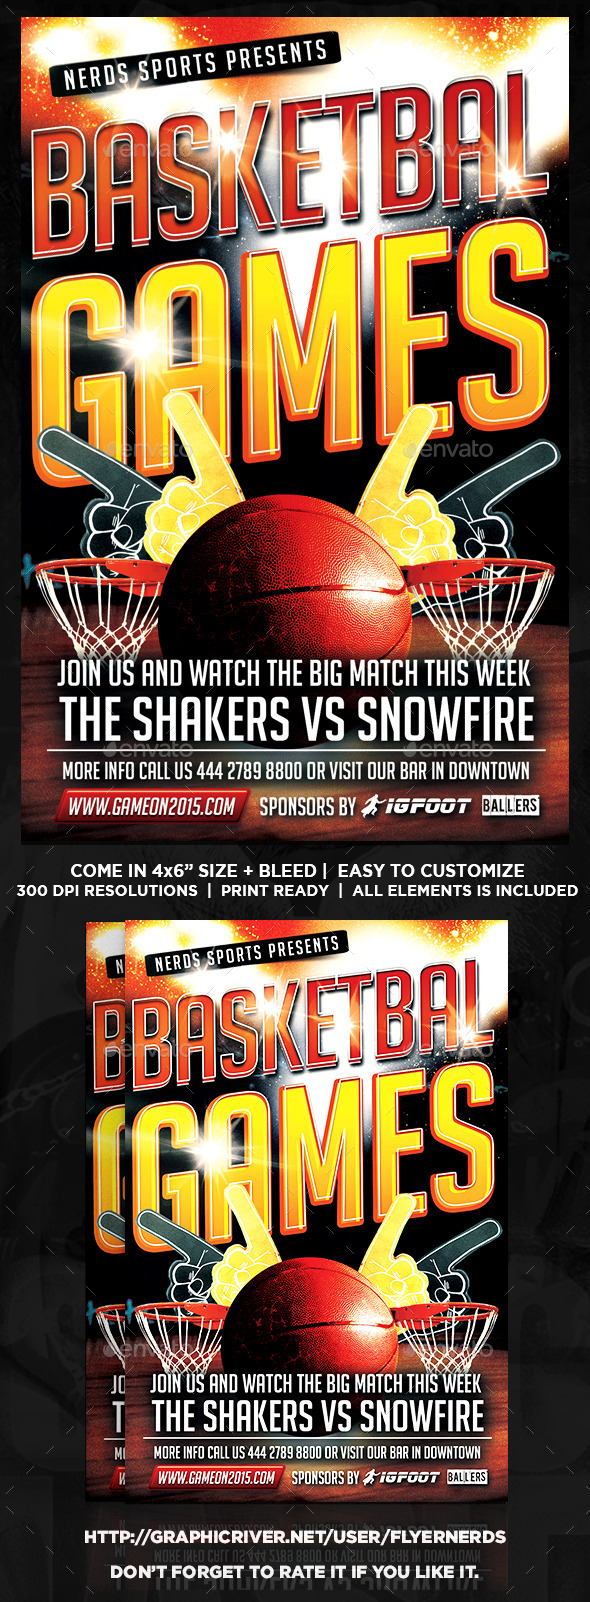 Game On Basketball Sports Flyer - Sports Events